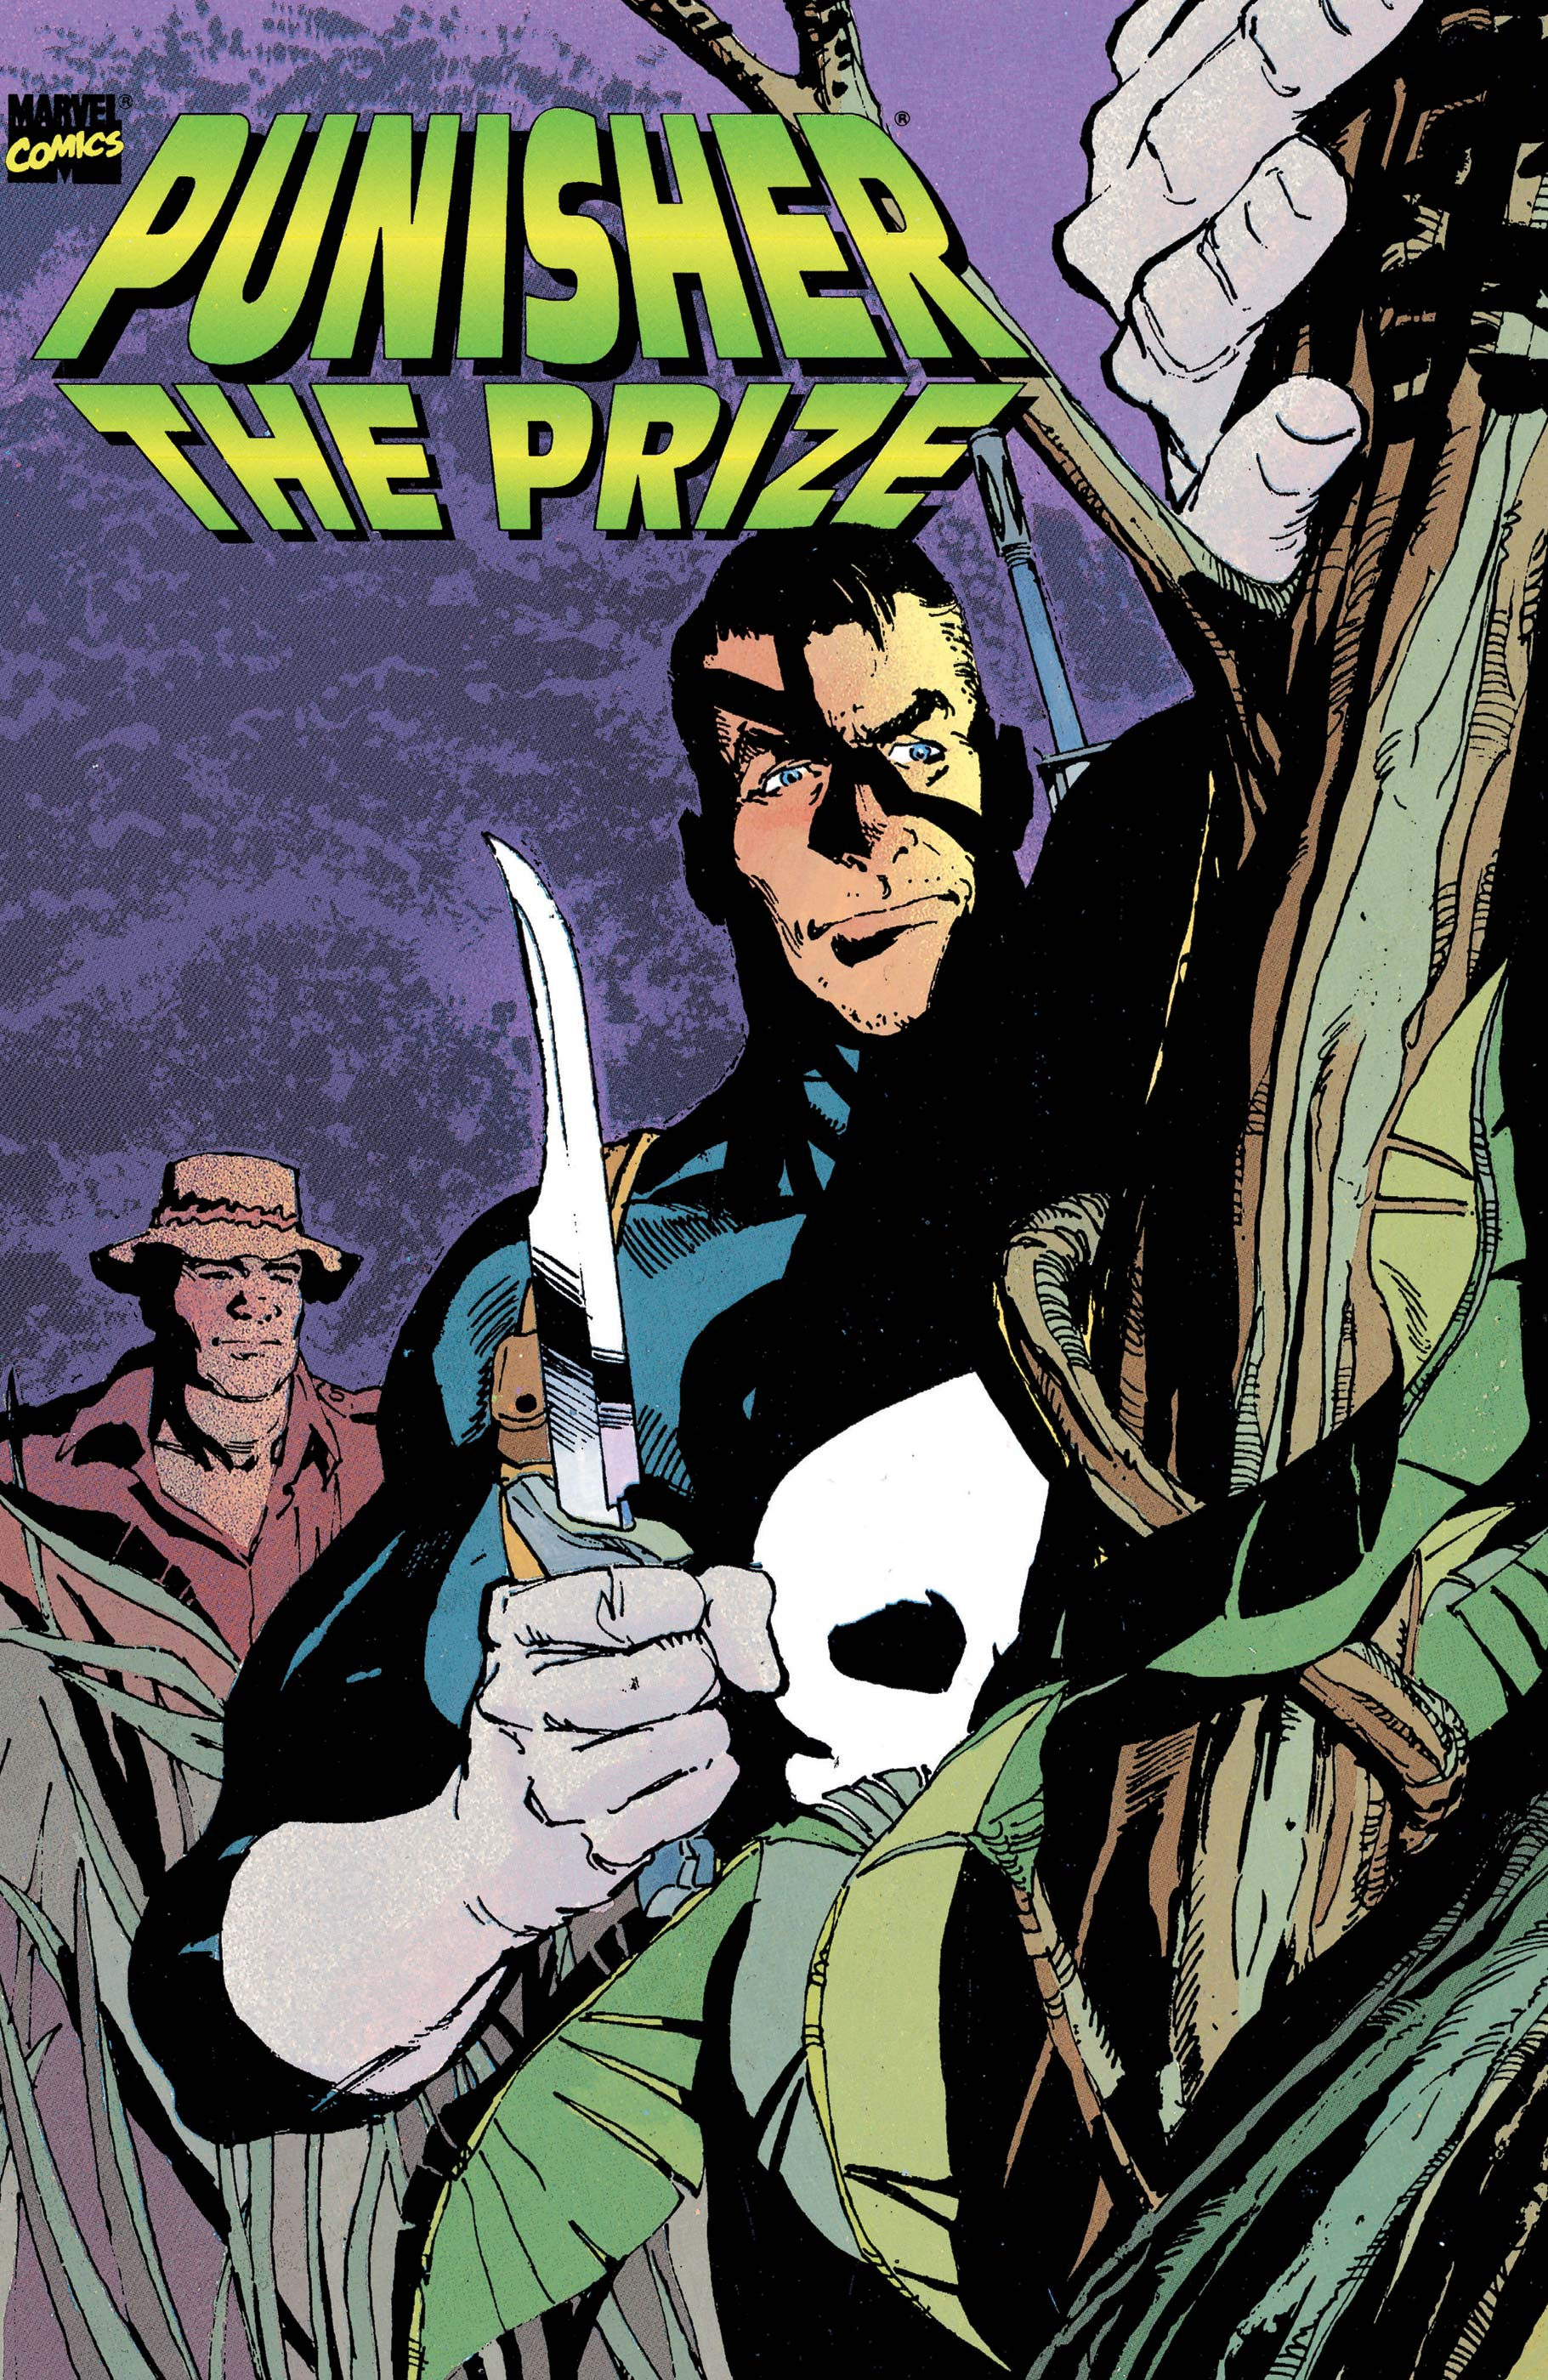 The Punisher: The Prize (1990) #1